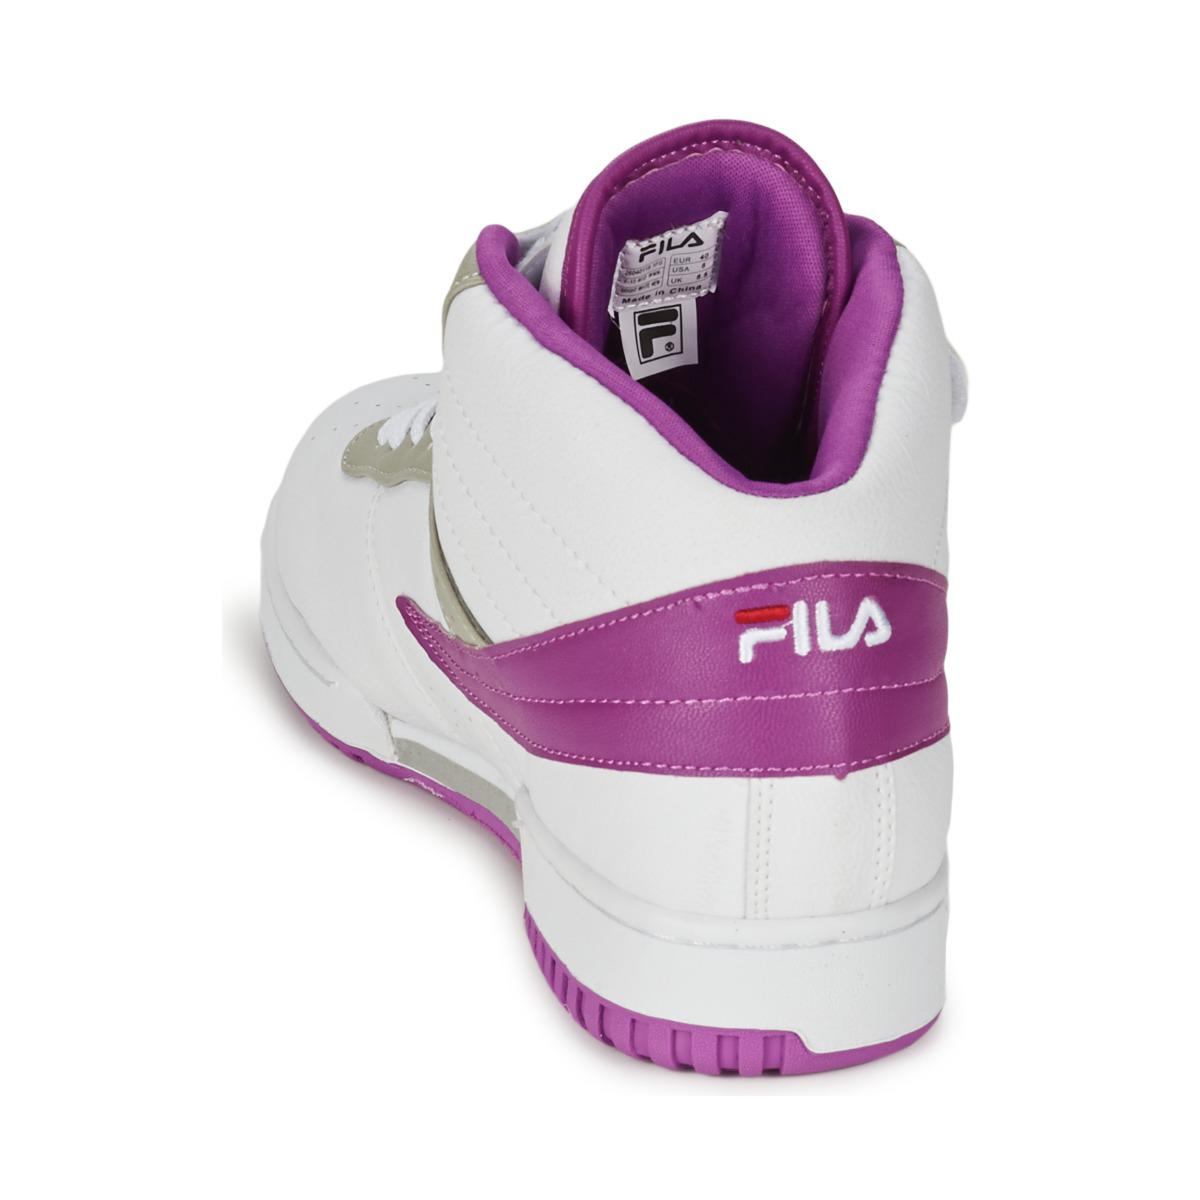 Fila F-13 Mid Wmn Shoes (high-top Trainers) in White